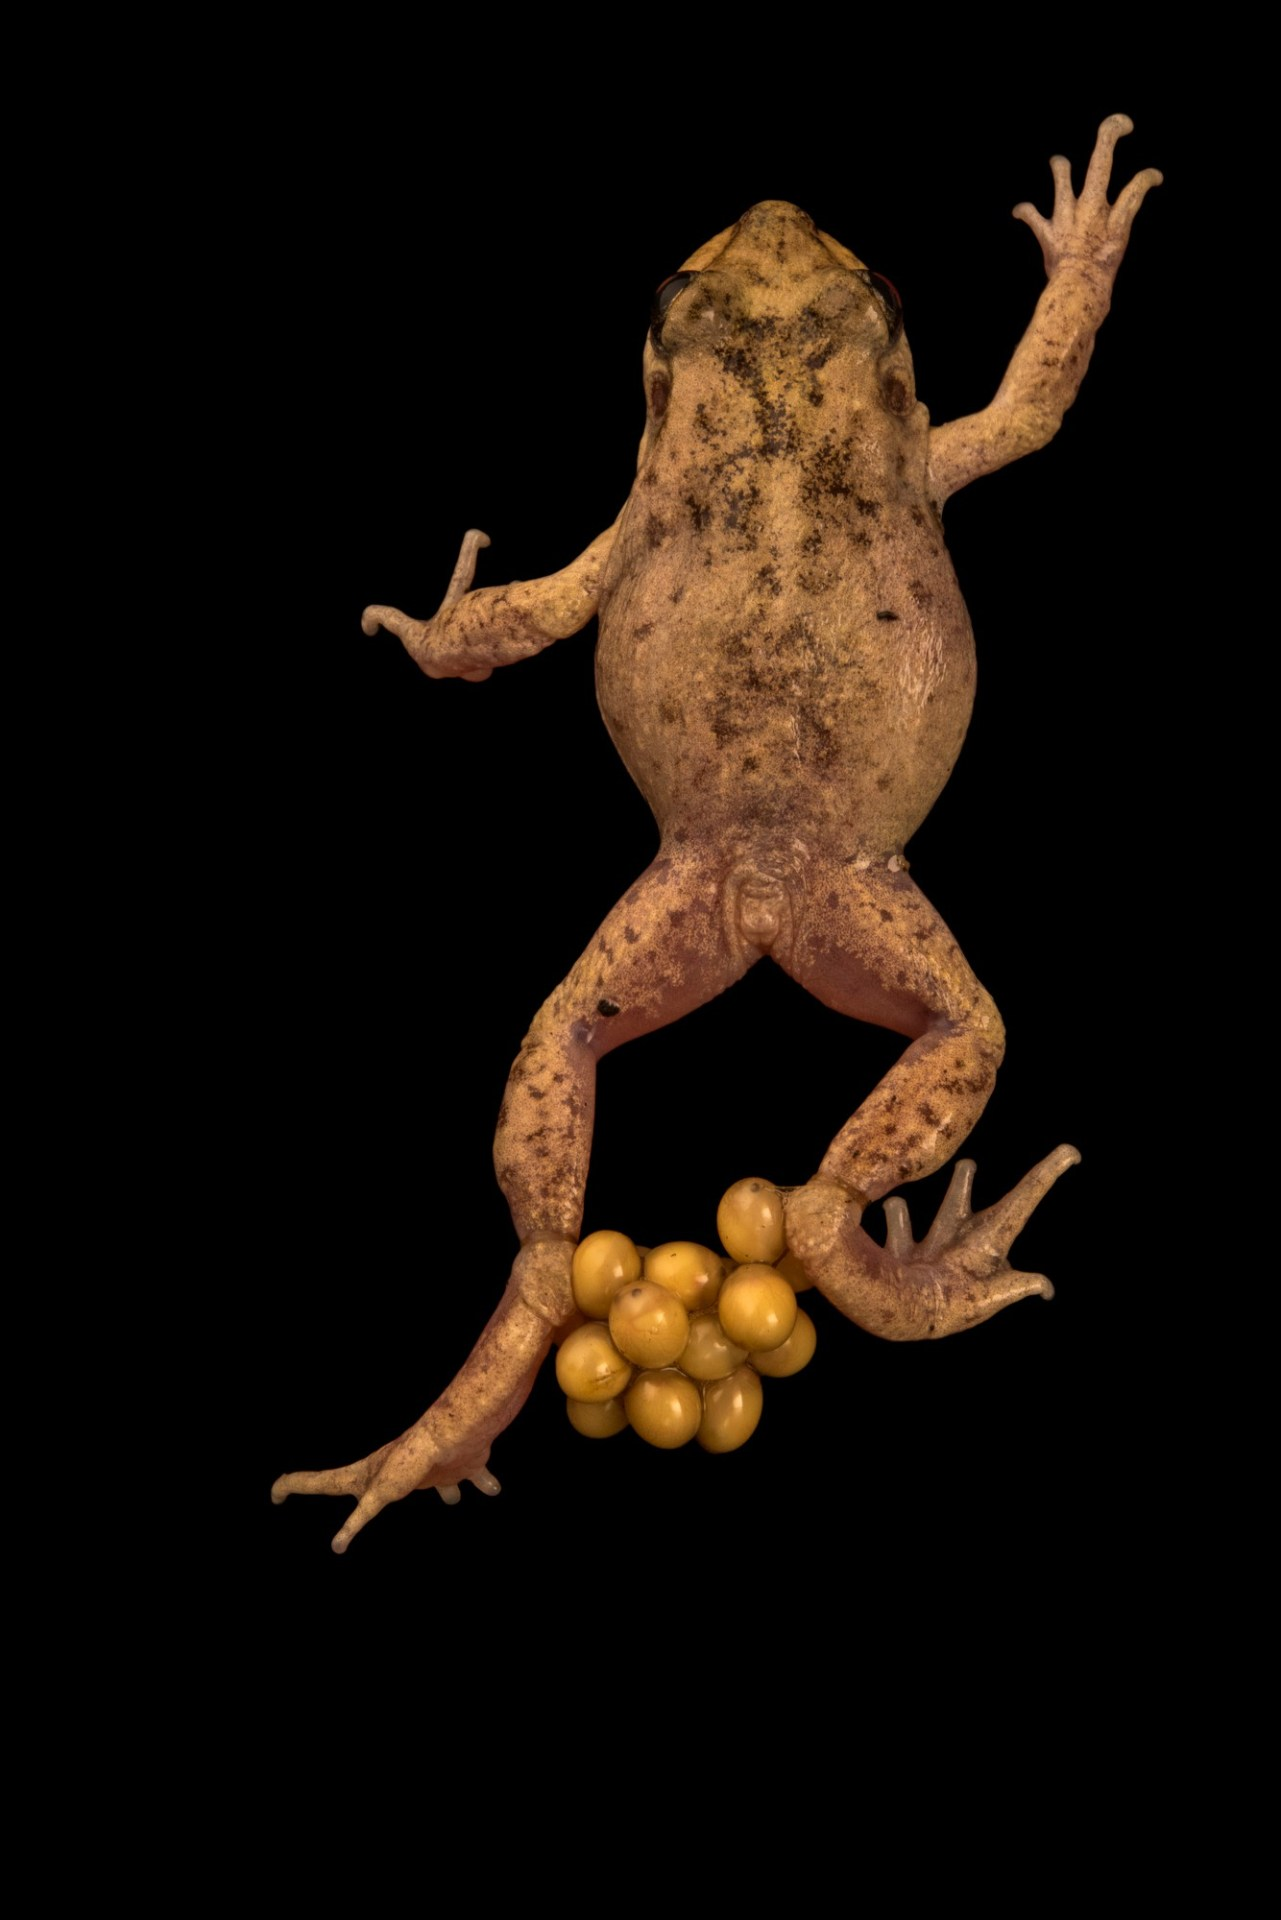 Photo: Majorcan or Mallorcan midwife toad (Alytes muletensis) carrying eggs on back legs at the London Zoo.